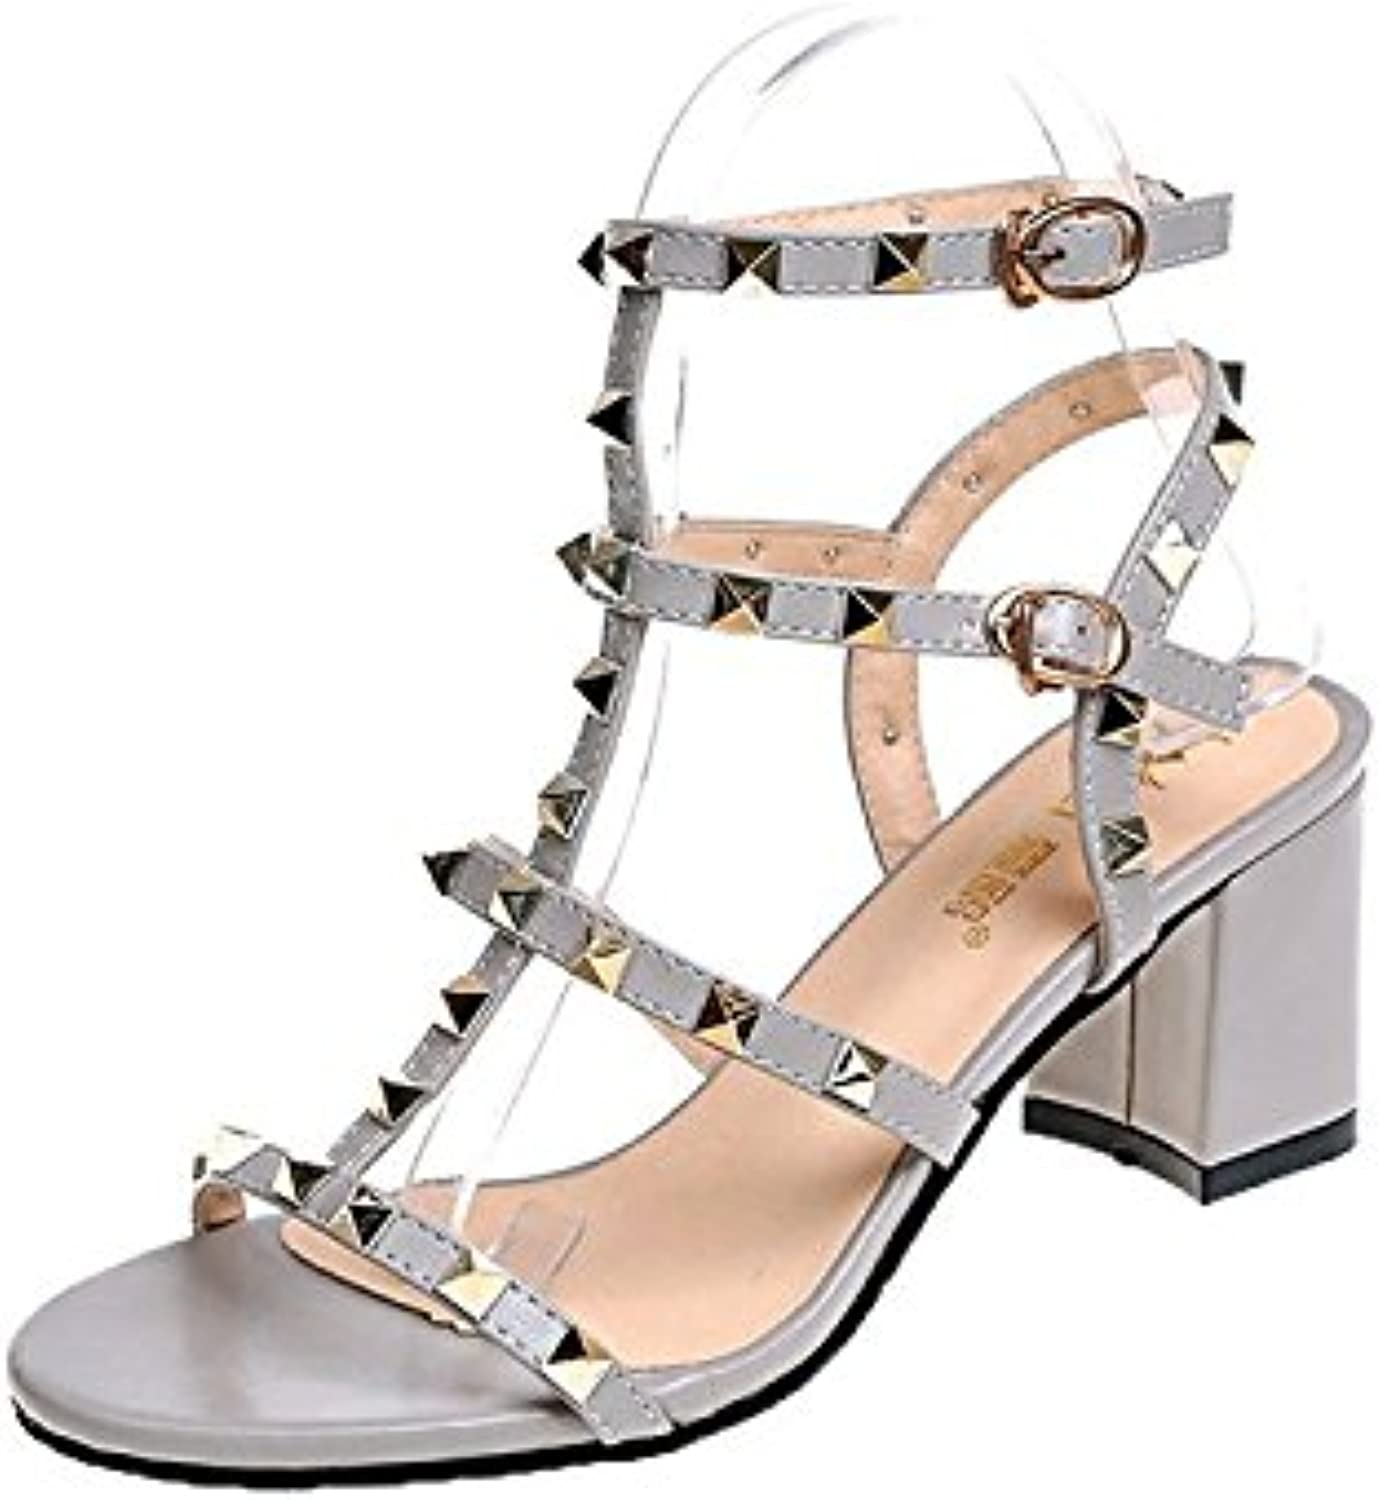 LHJY Sandals High Heels Summer Fashion Fashion Hollowed Out Toes Rome Sandals and Sandals